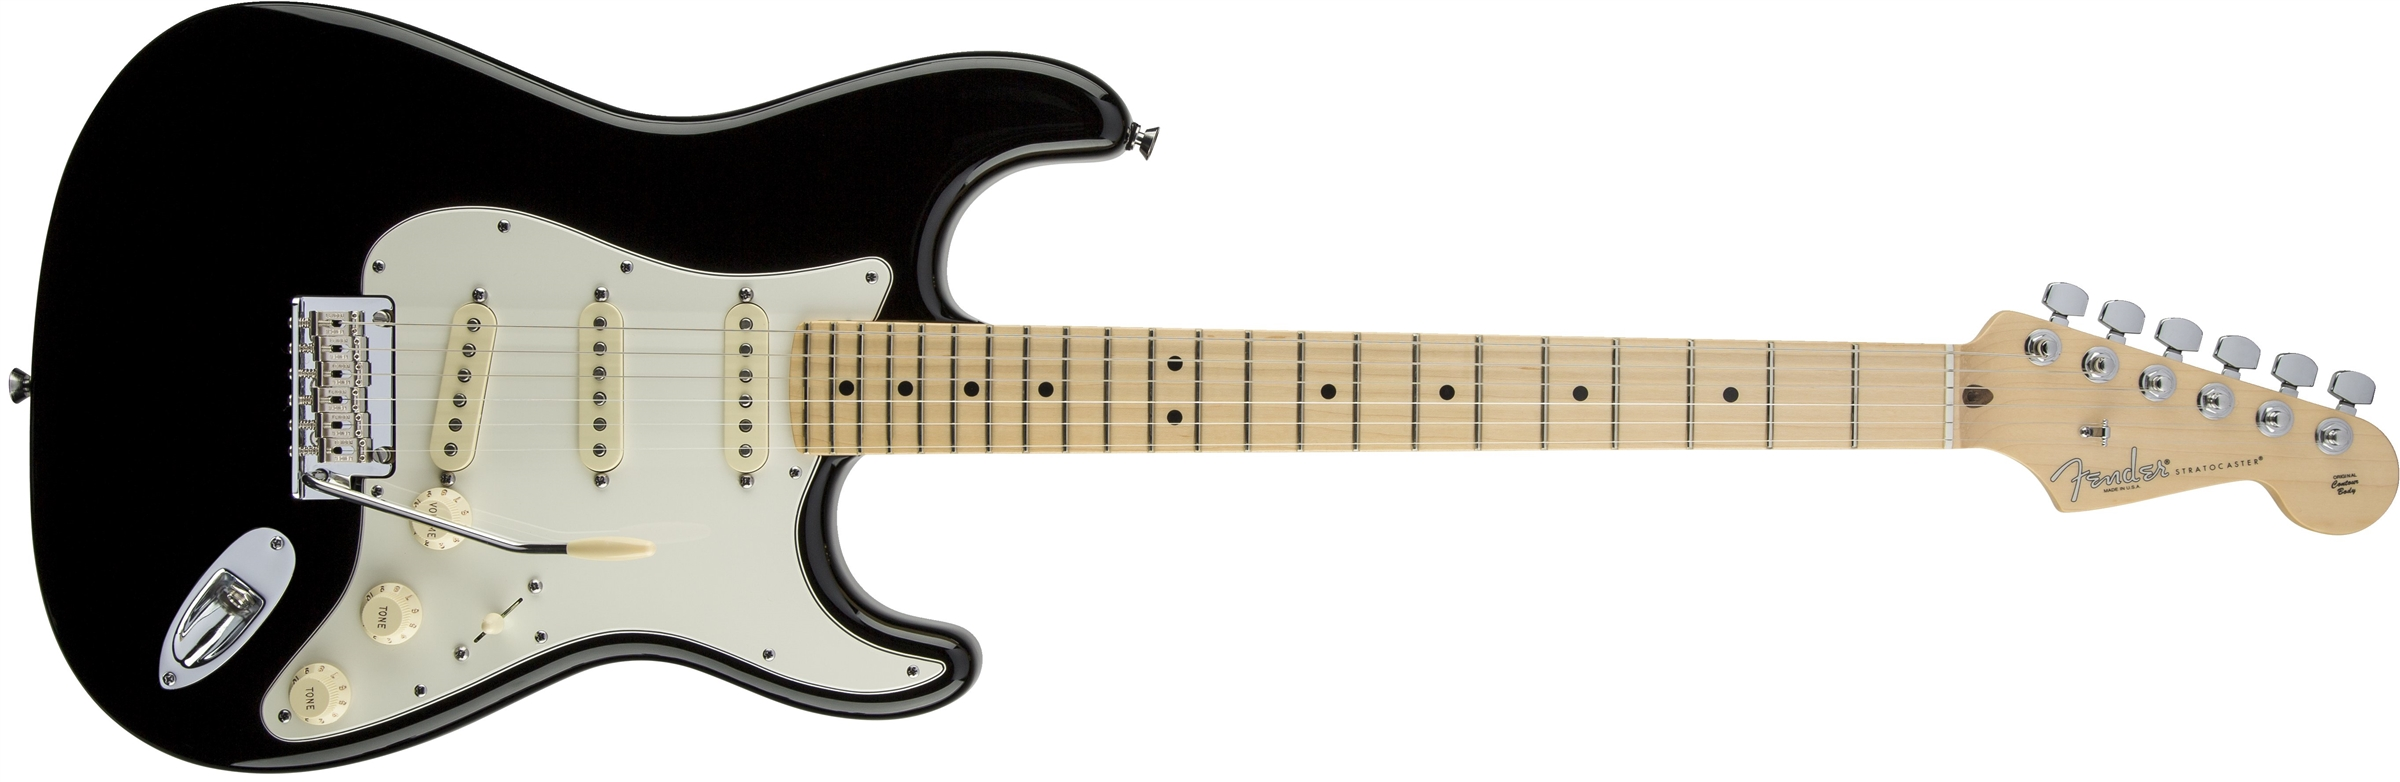 stratocaster famous guitar body designs